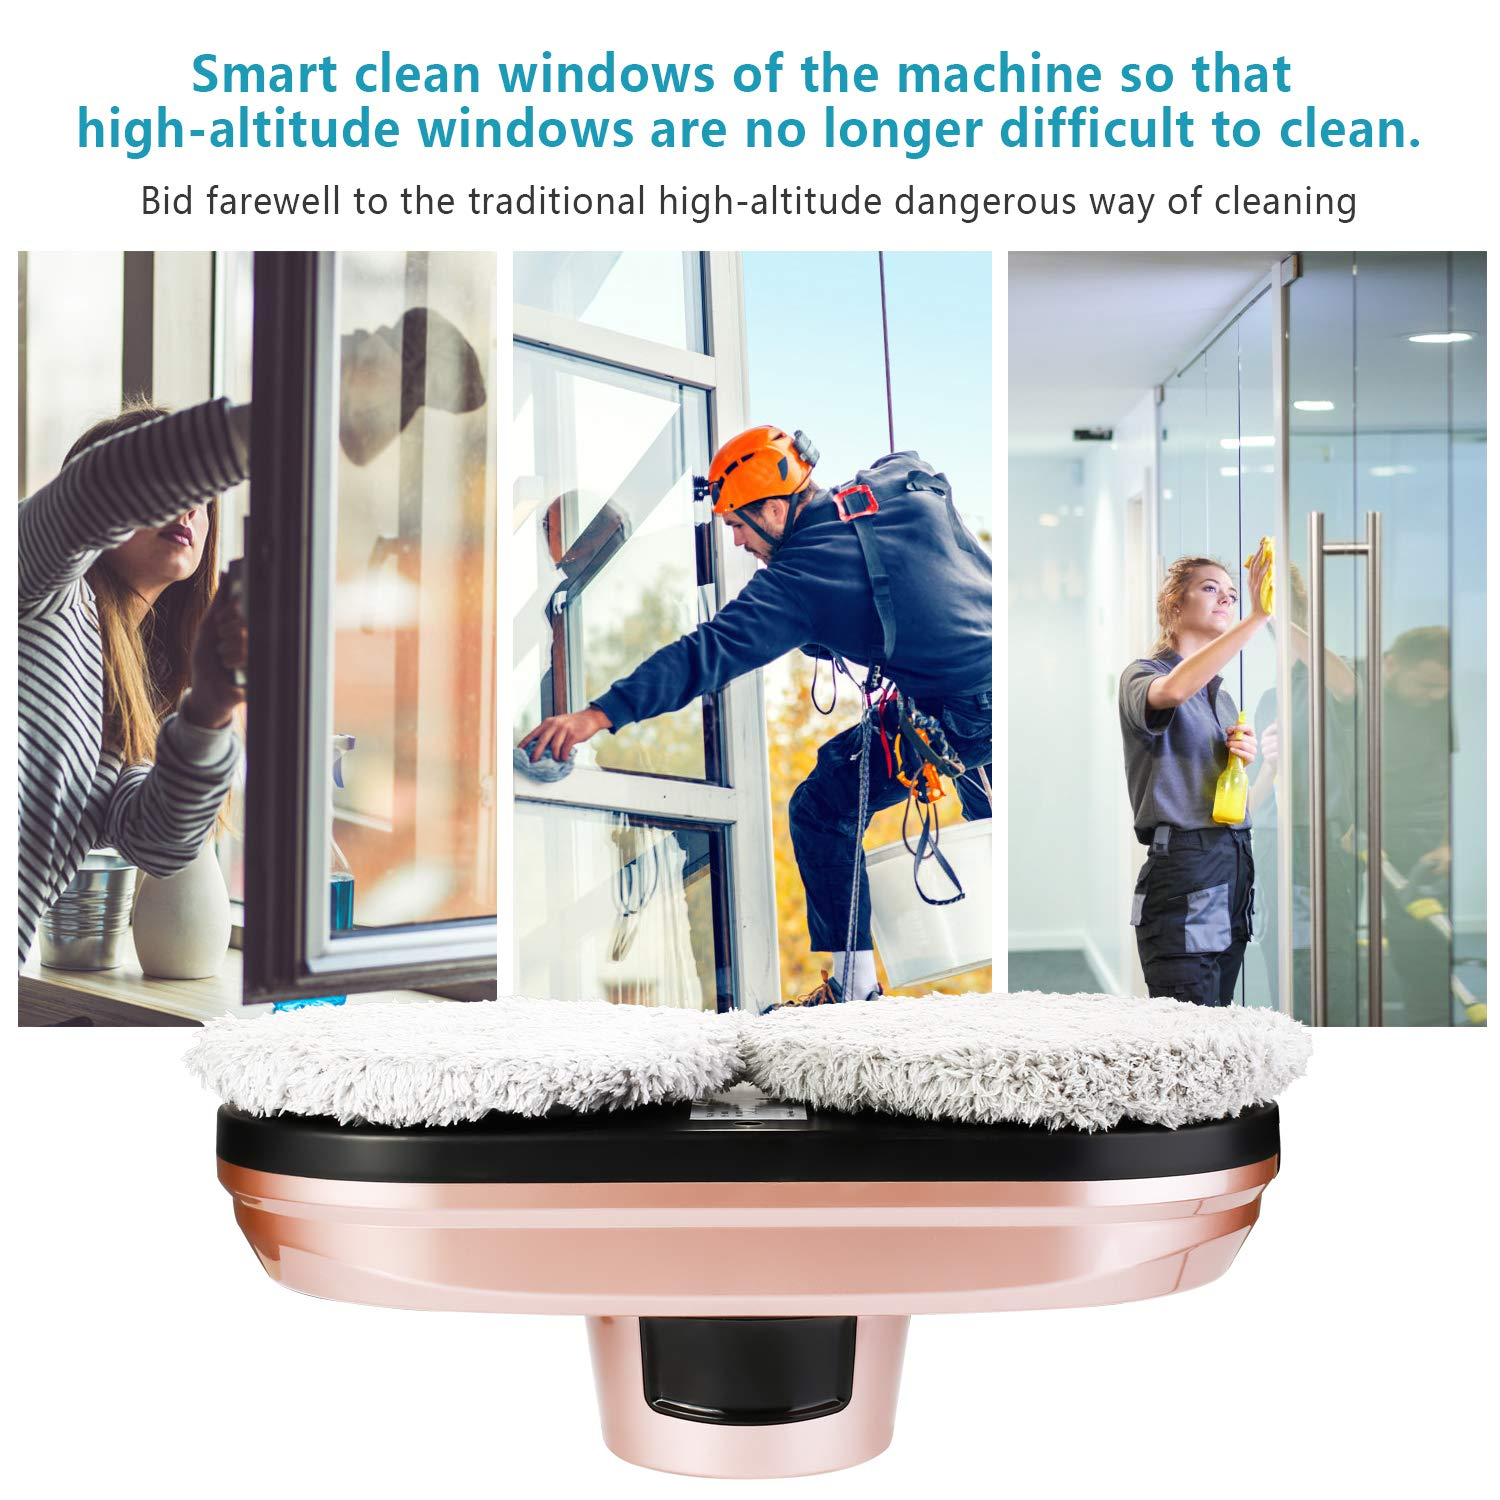 D1D9 Windows Glass Cleaner Robot Automatic Magnetic Vacuum Cleaner with Safety Rope Smart Glass Cleaning Tools for Inside Outside Remote Control by D1D9 (Image #3)